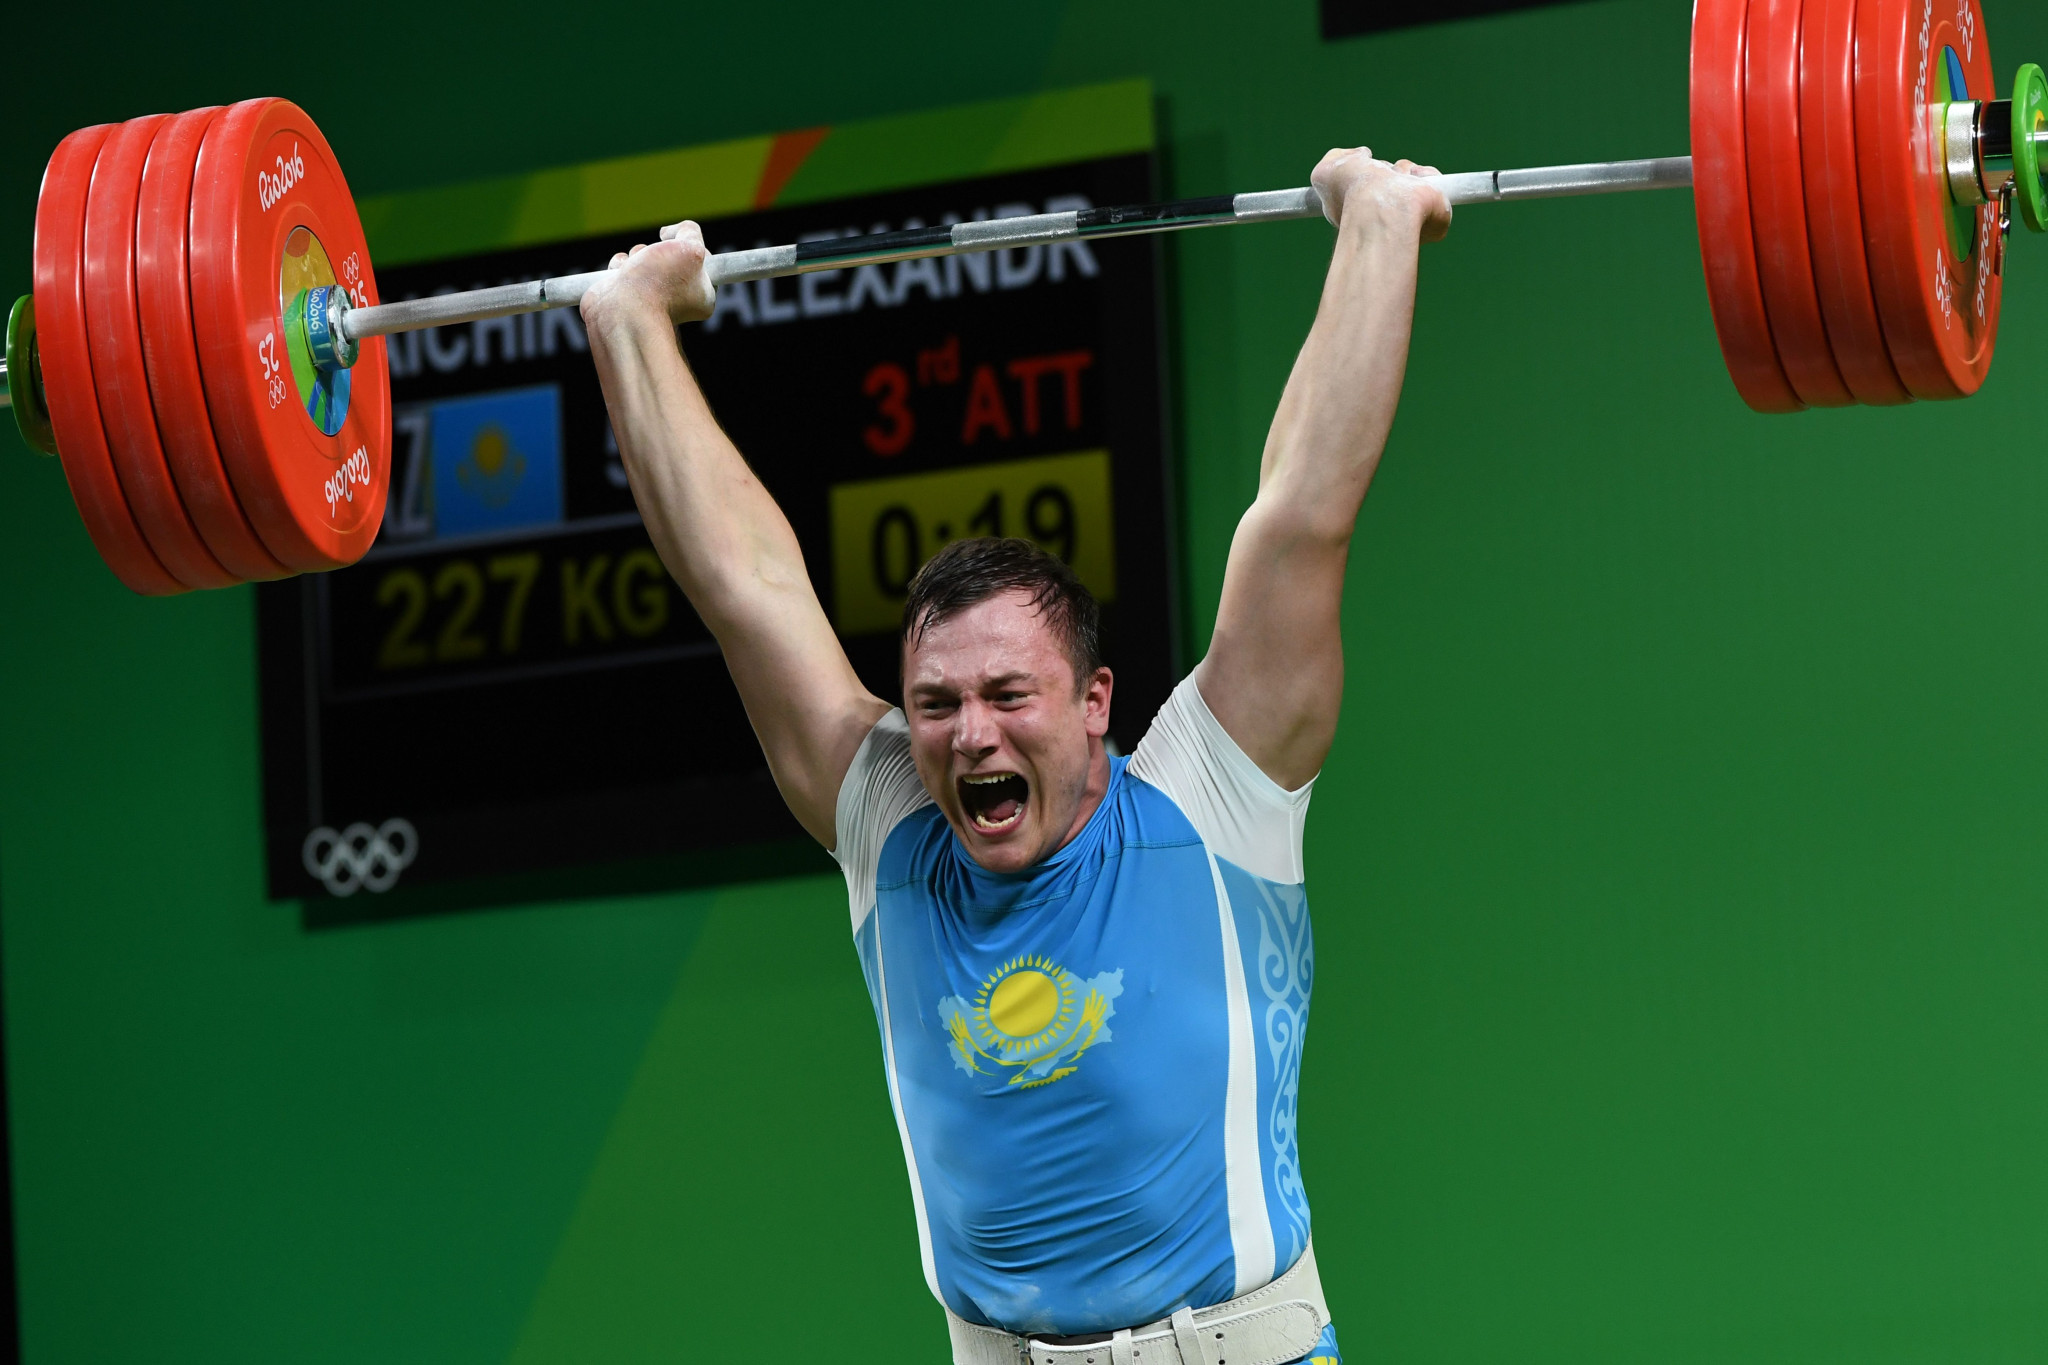 Alexandr Zaichikov, a 2015 world champion and 2016 Olympic bronze medallist, is another high profile Kazakh weightlifter to have served a drugs ban ©Getty Images